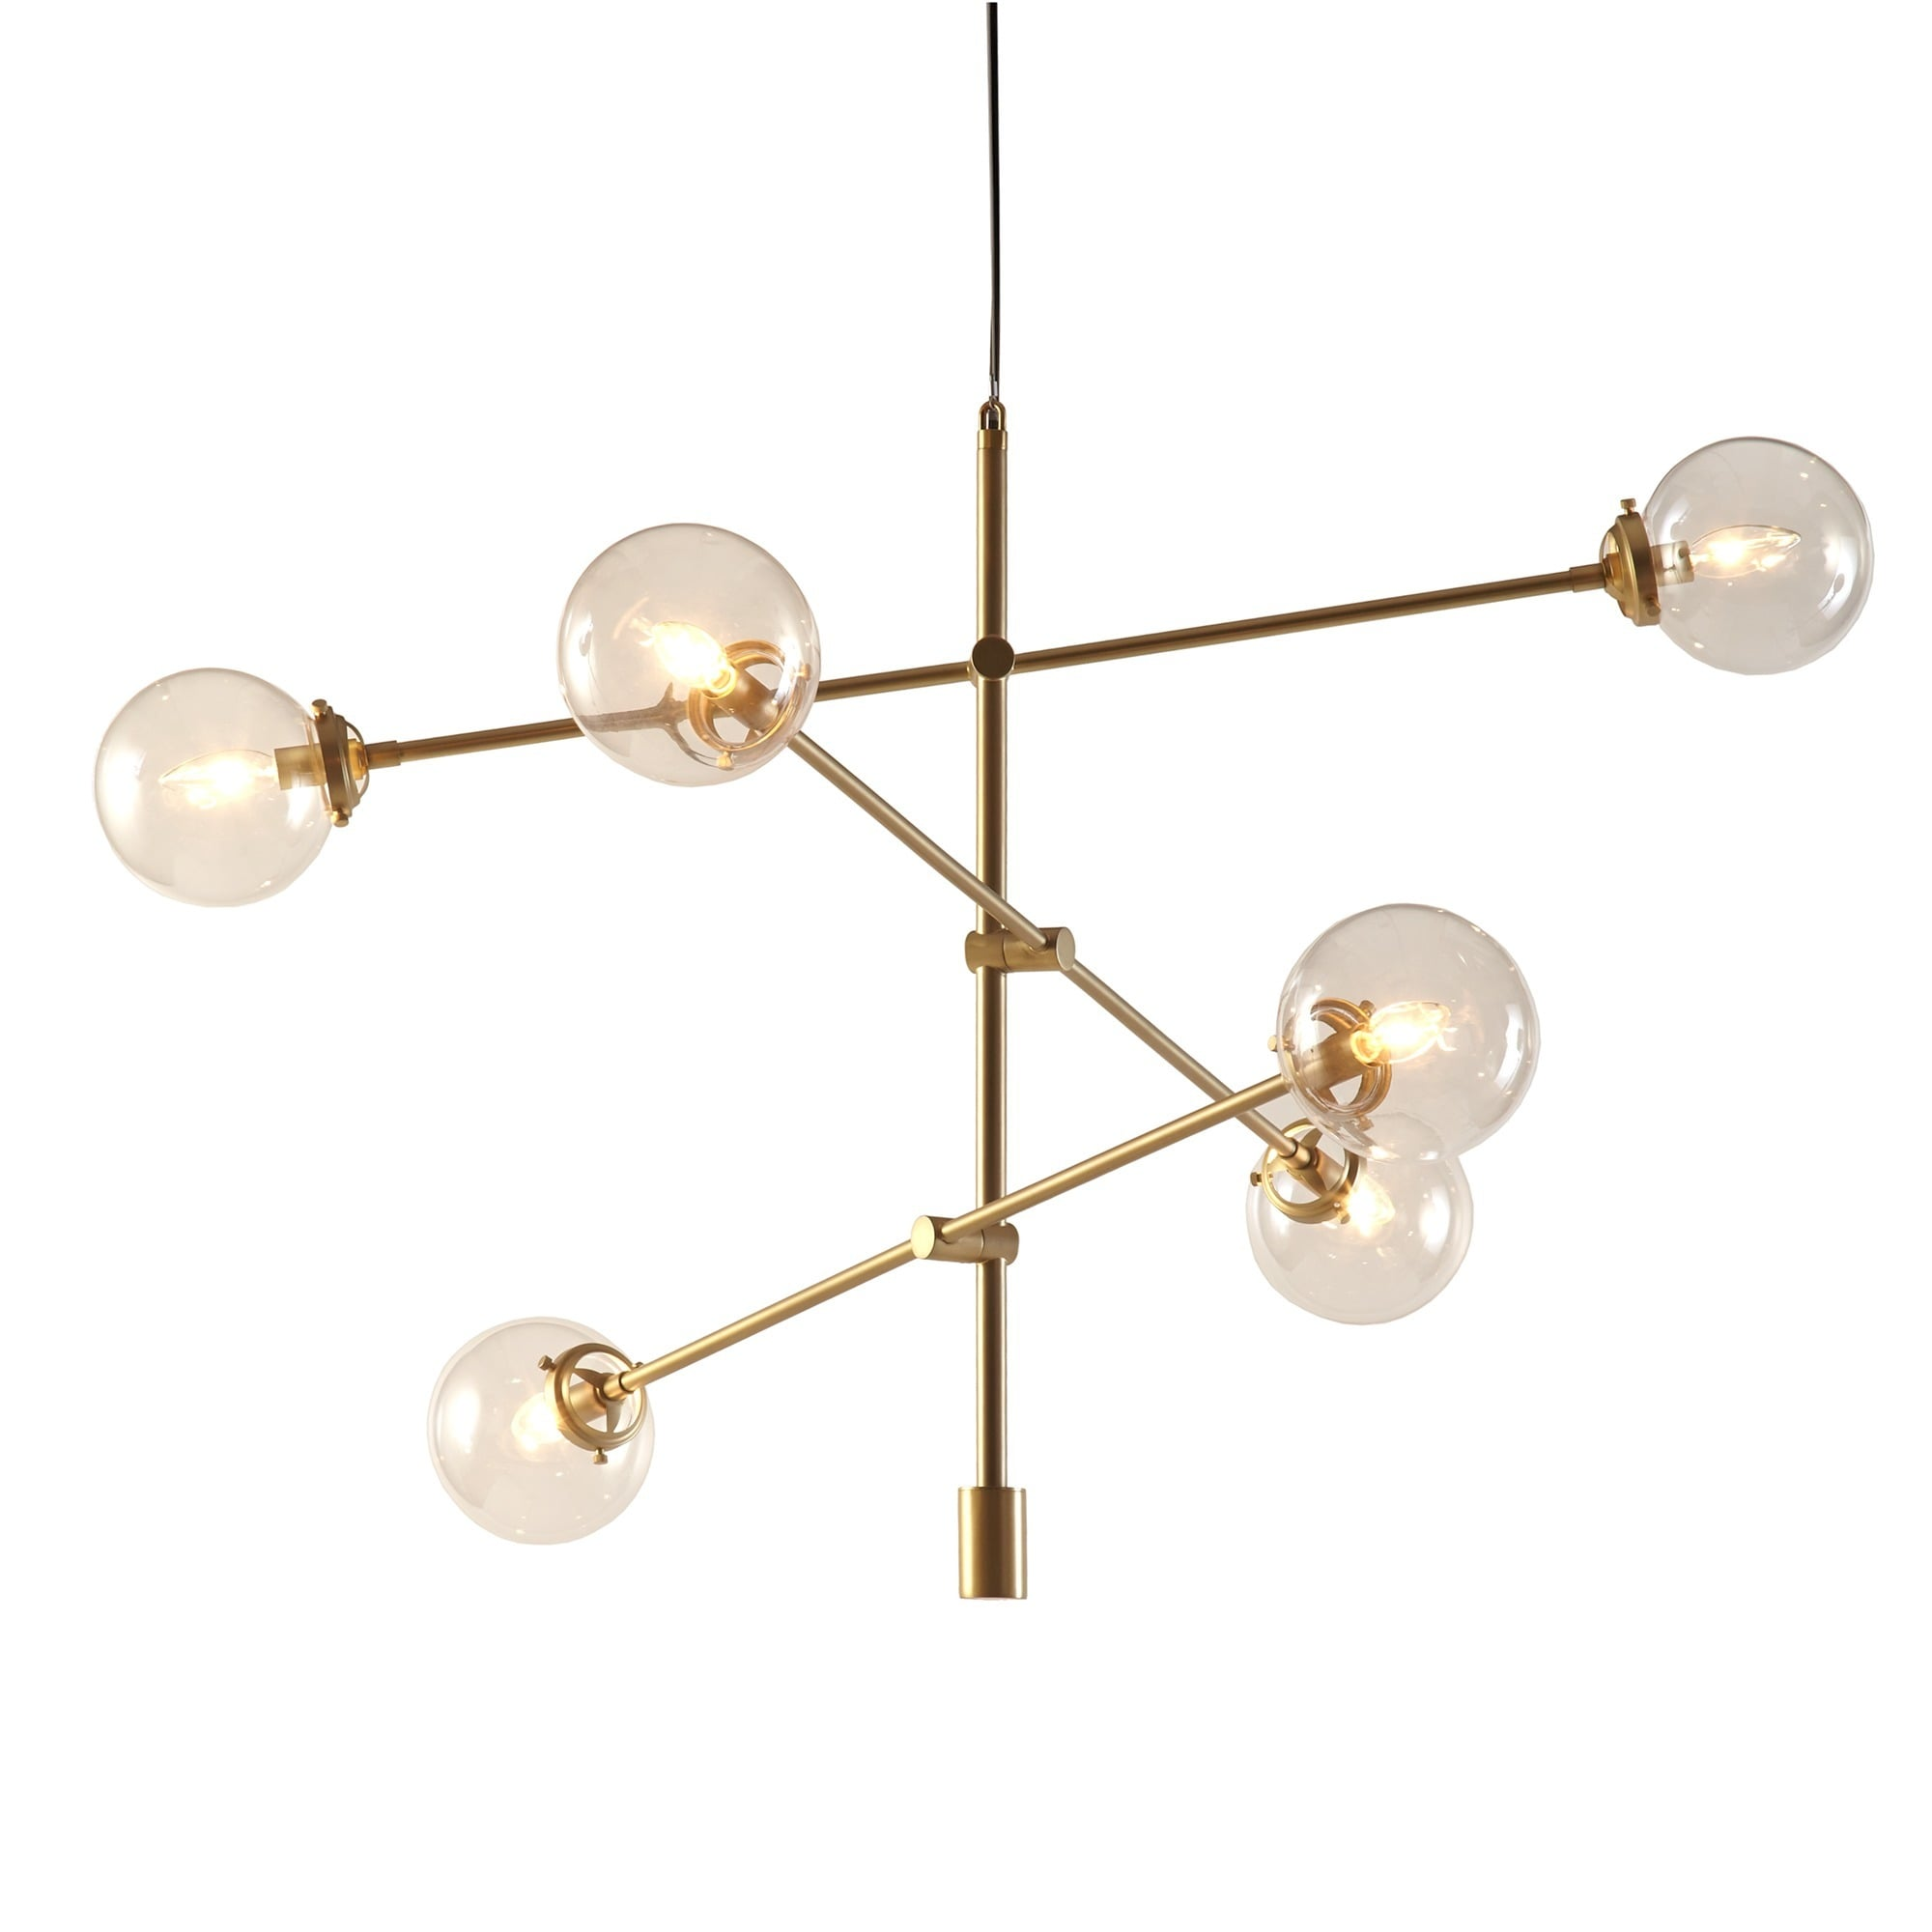 Inkivy cyrus gold chandelier free shipping today overstock inkivy cyrus gold chandelier free shipping today overstock 19346819 mozeypictures Gallery